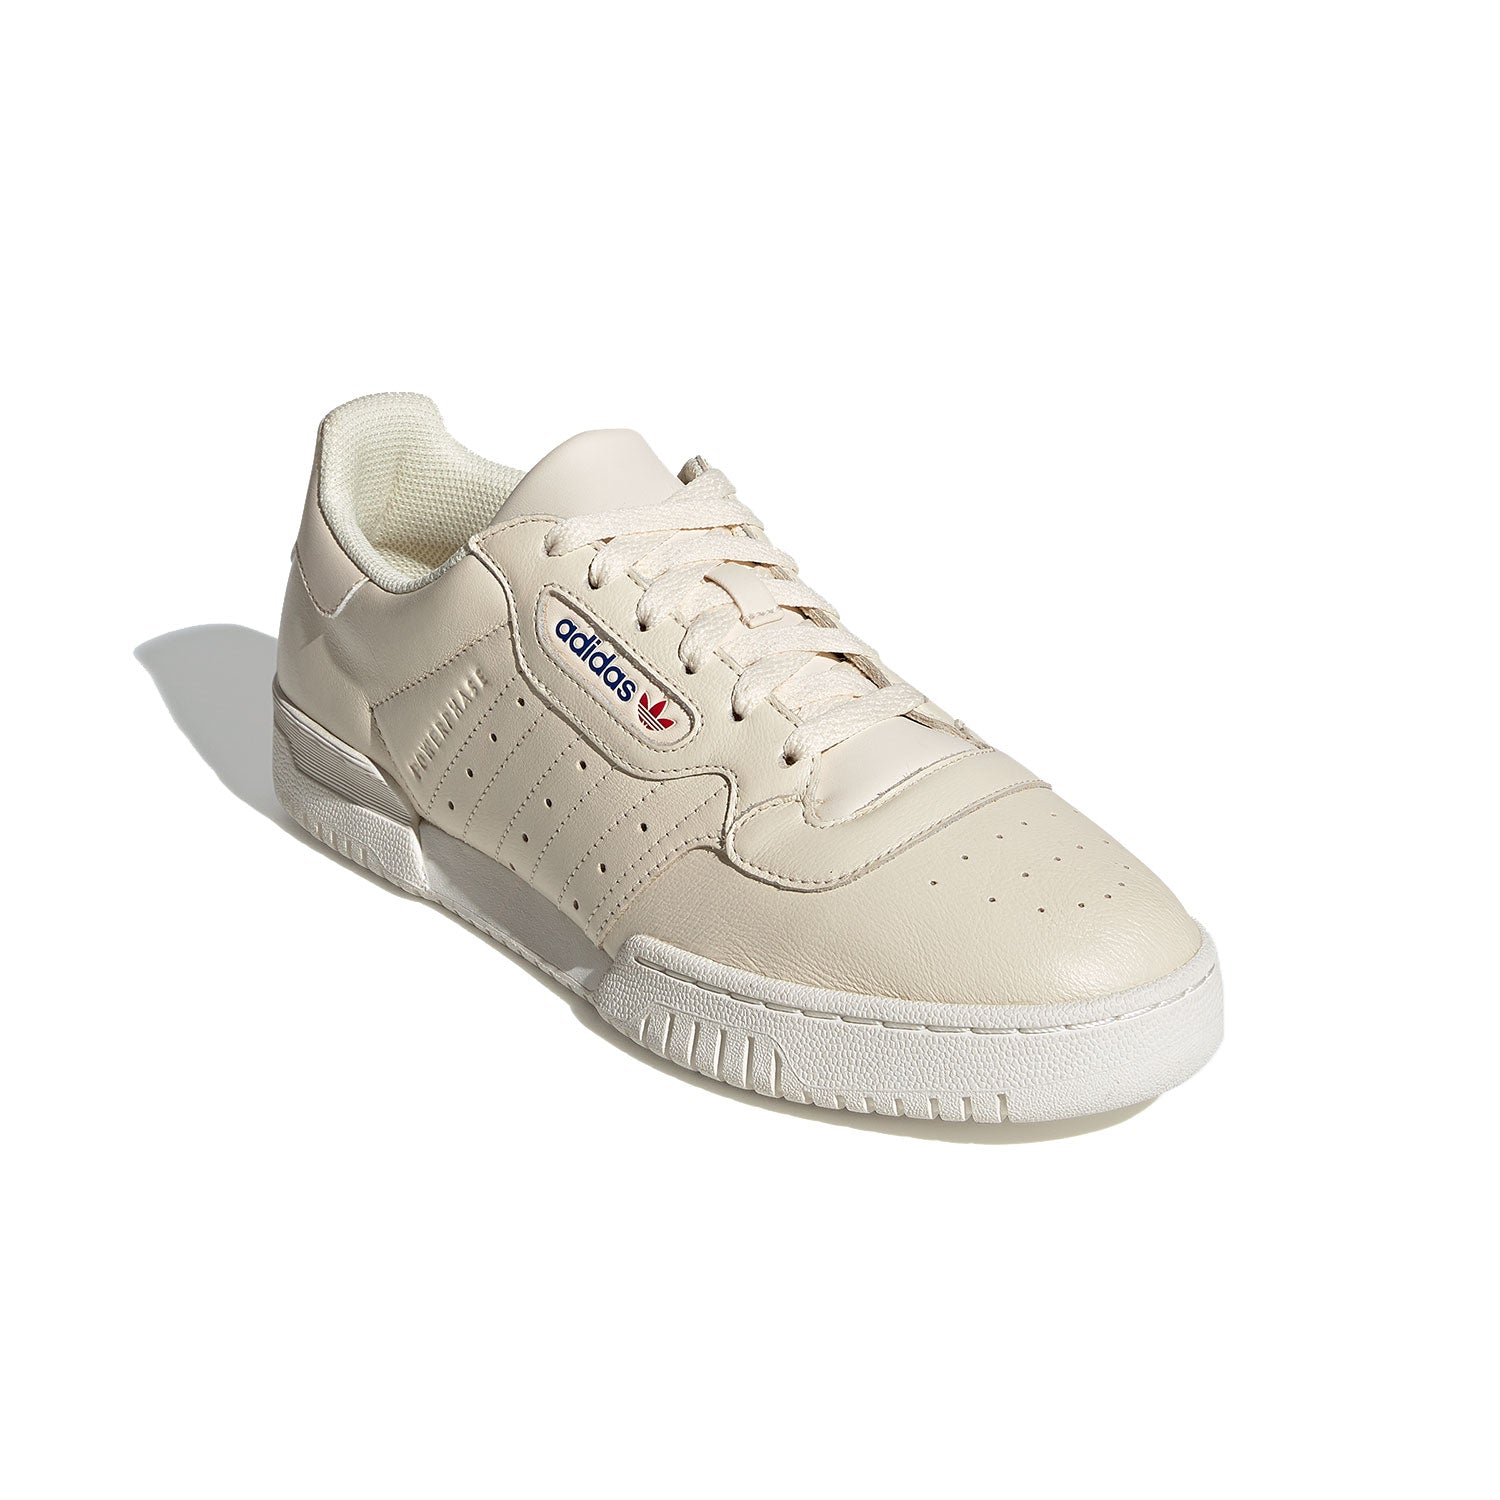 POWERPHASE-ECRU TINT